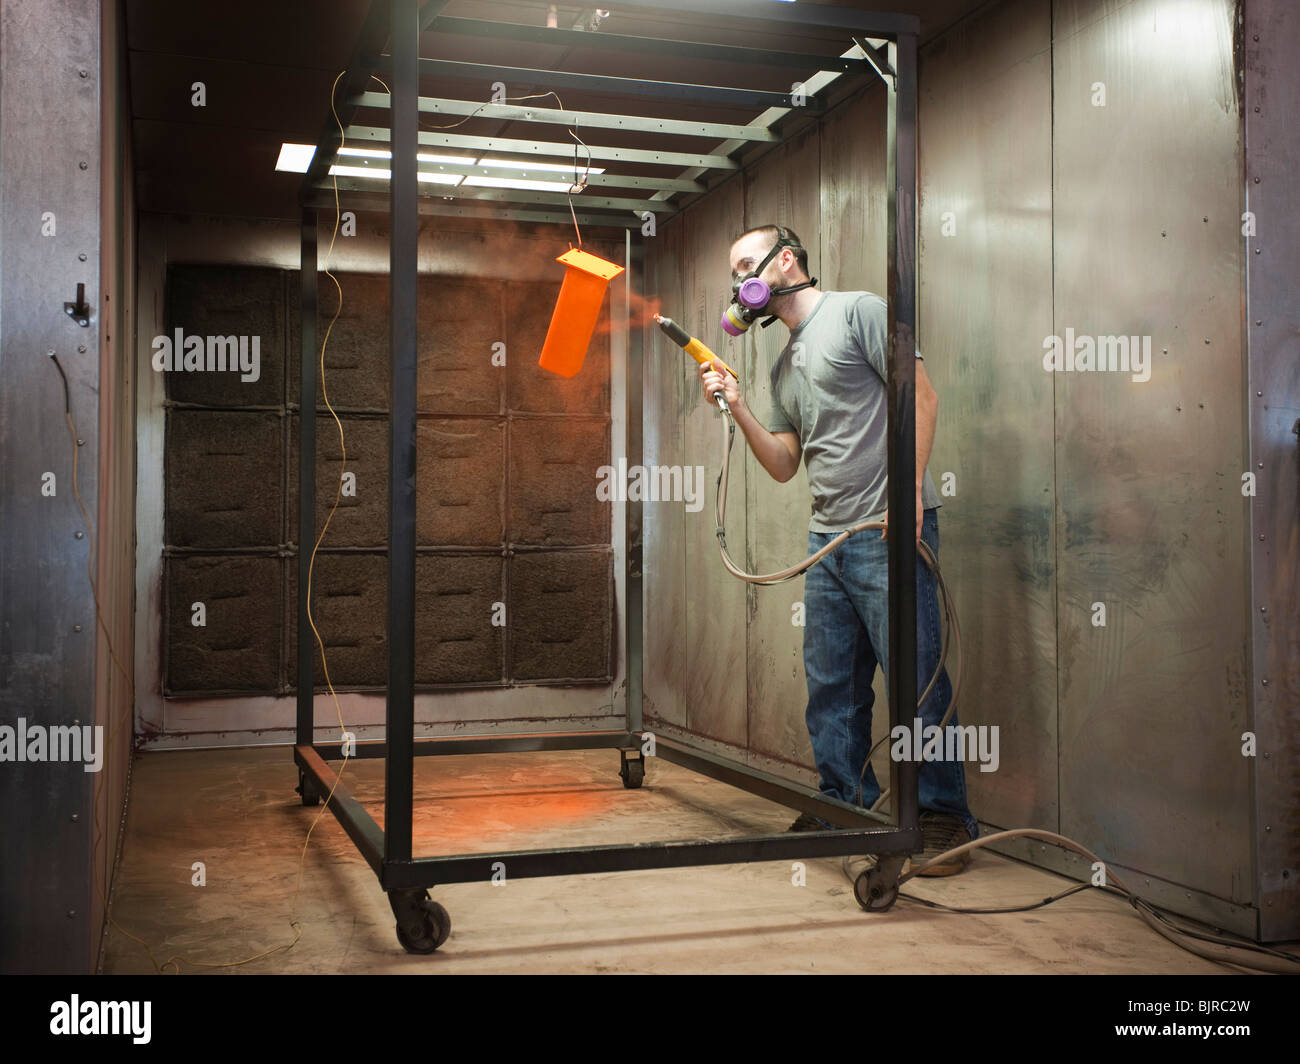 USA, Utah, Orem, man using paint spray gun - Stock Image